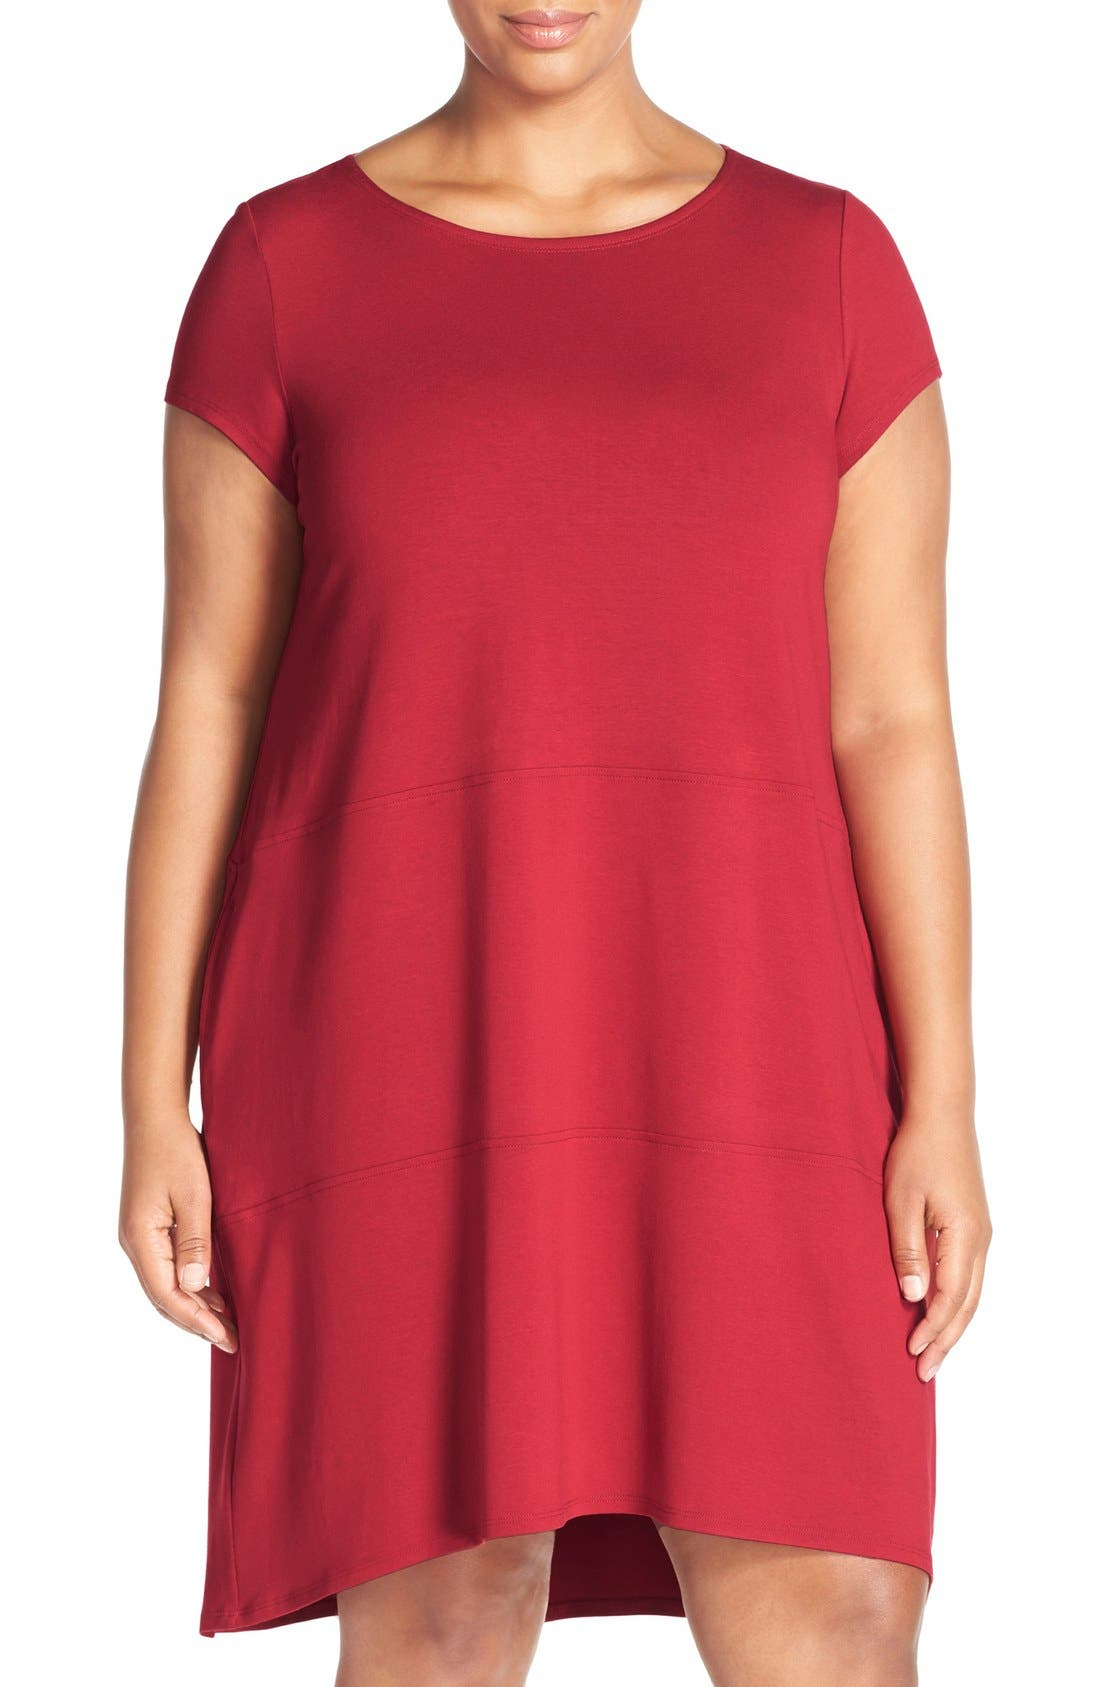 Main Image - Eileen Fisher Bateau Neck Cap Sleeve Dress (Plus Size)